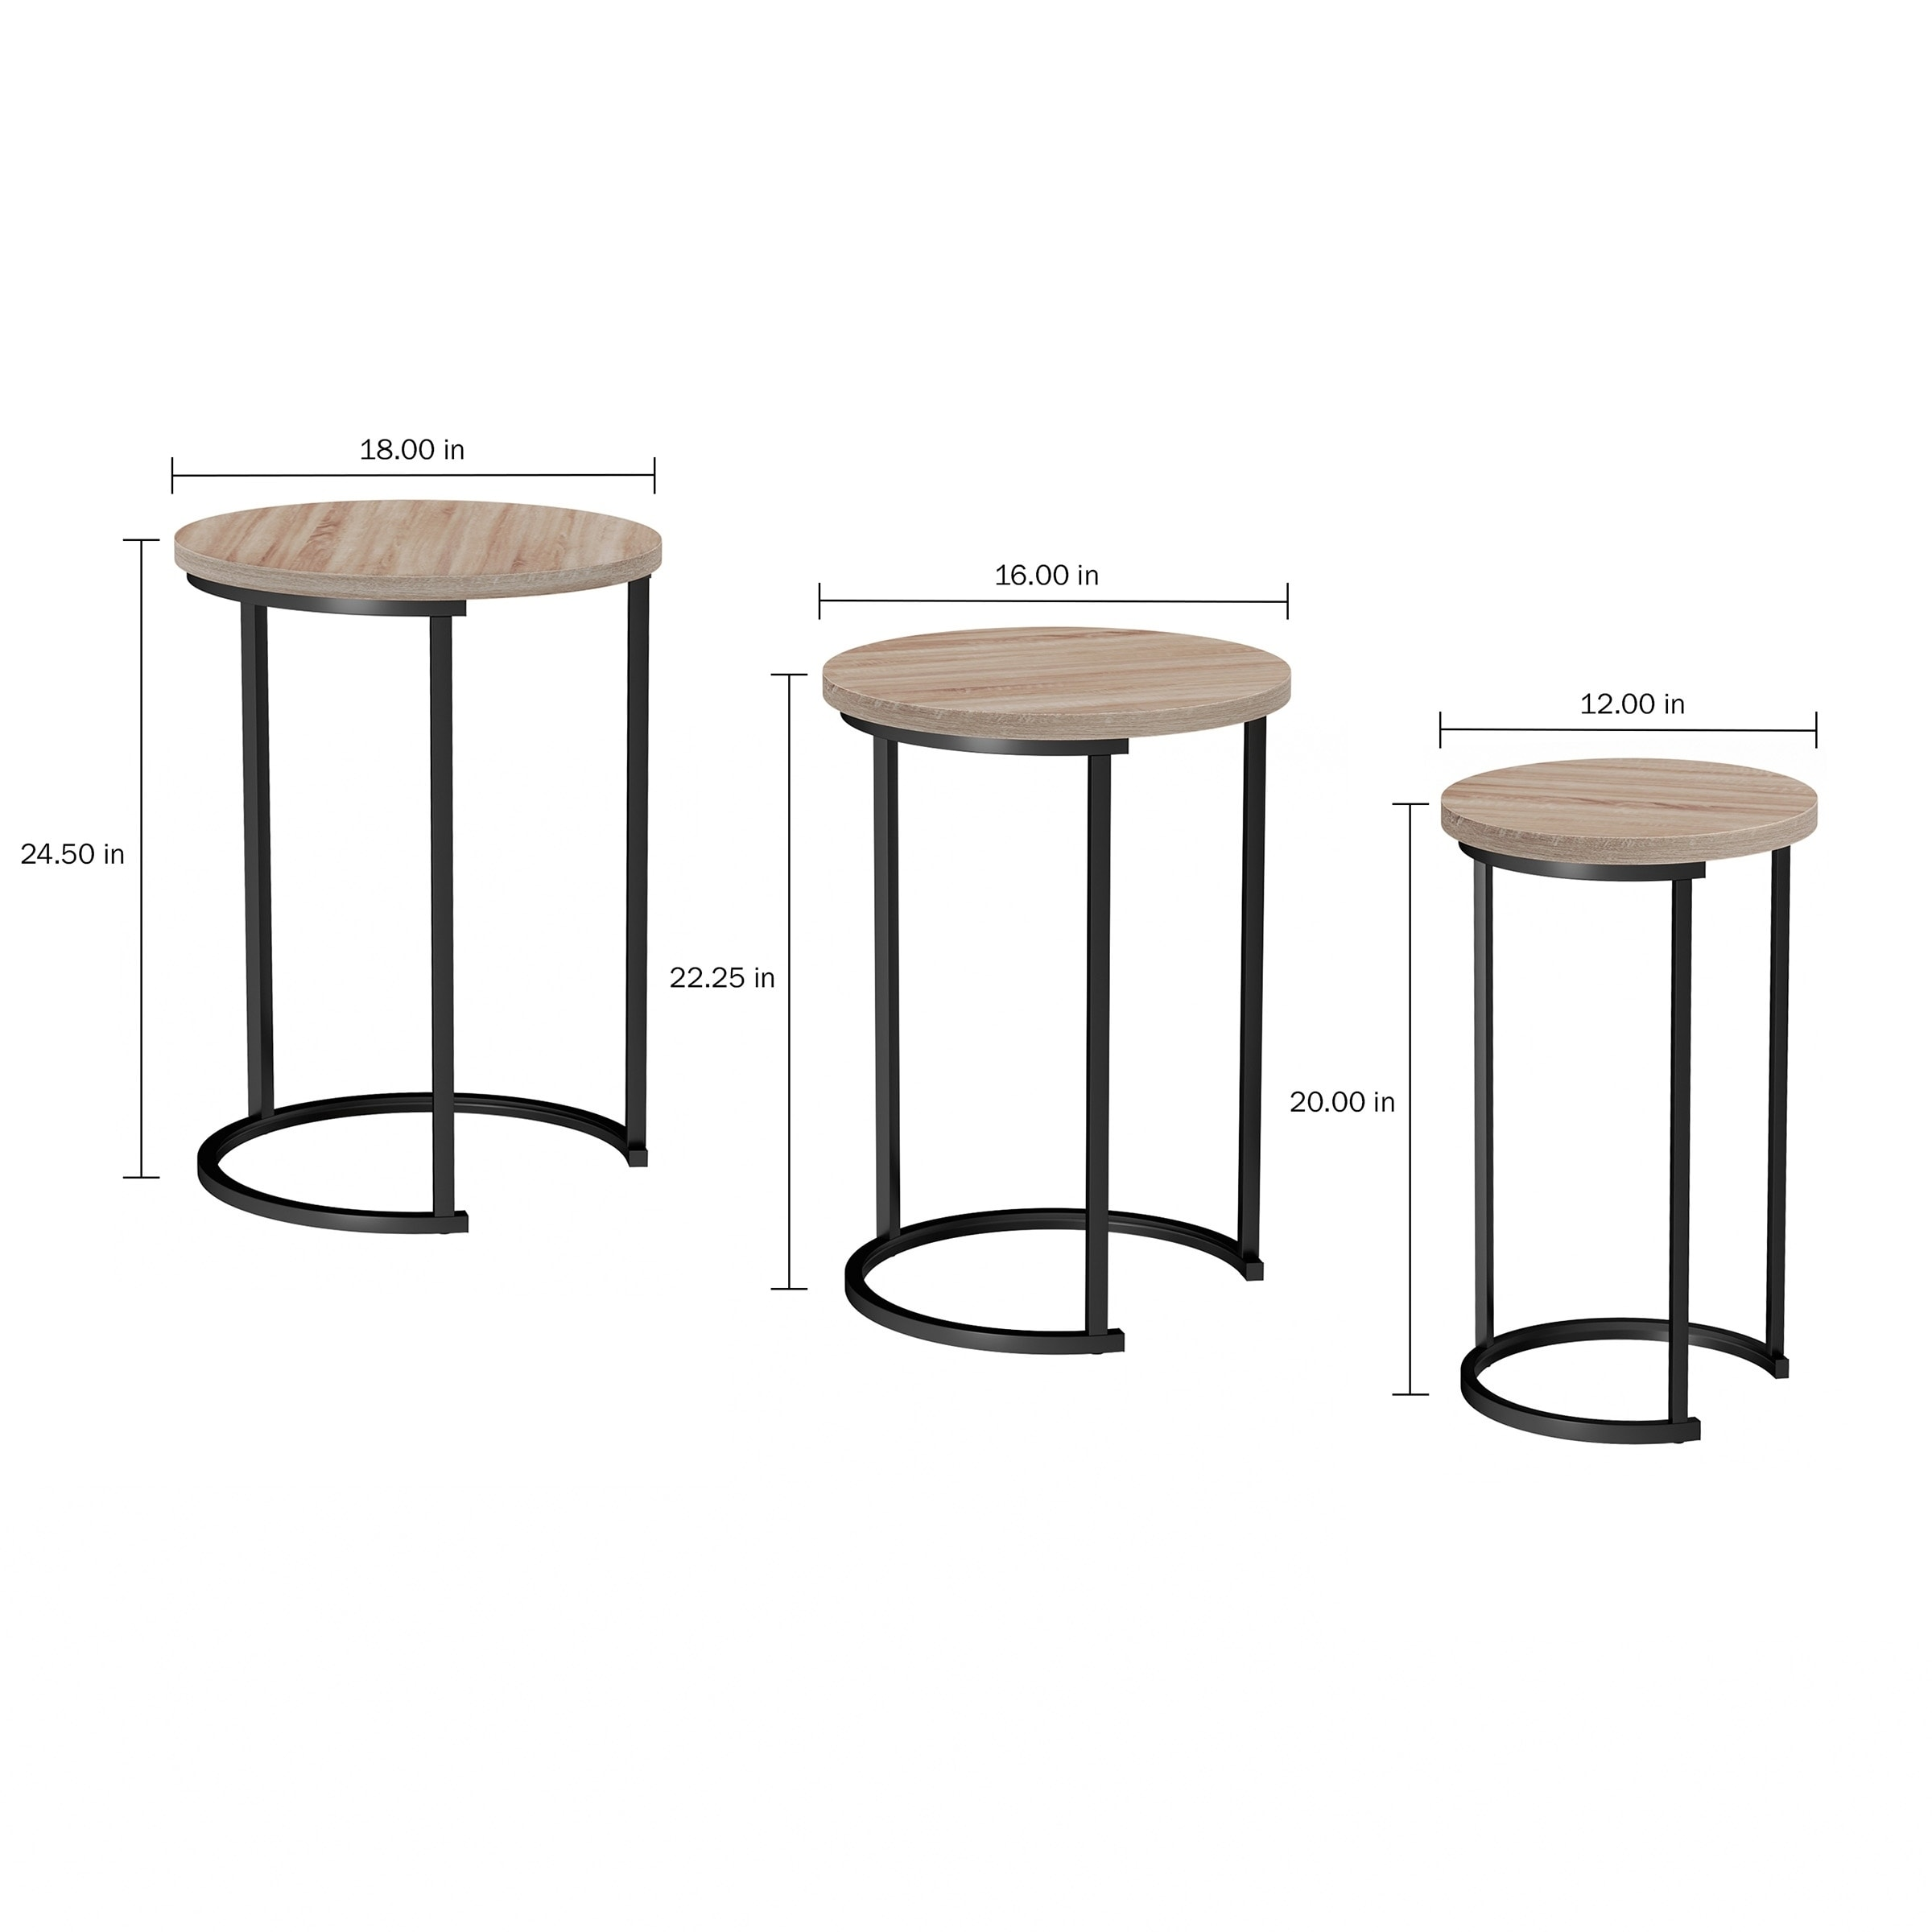 Lavish Home Accent Furniture Woodgrain Look Round Nesting Tables With Black Base Set Of 3 On Free Shipping Today 28082290